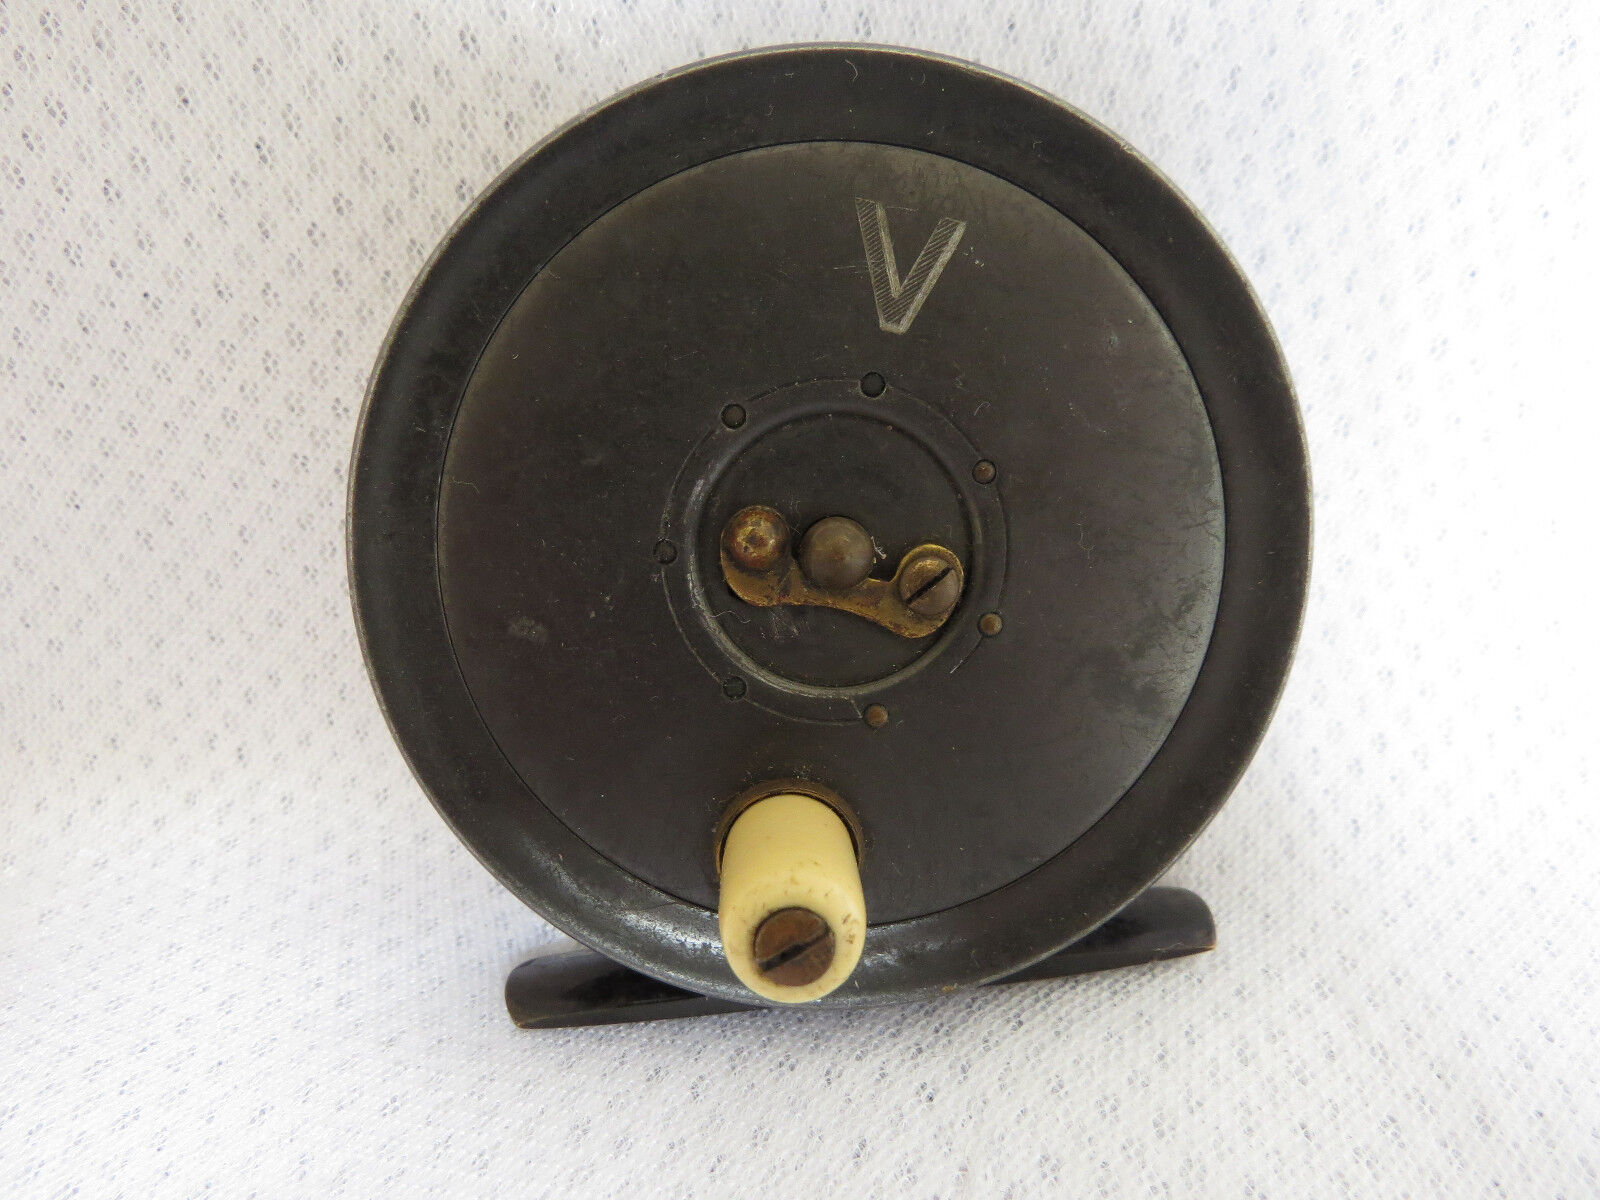 A CARTER & CO SOUTH MOLTON  3  TROUT REEL BY DINGLEY